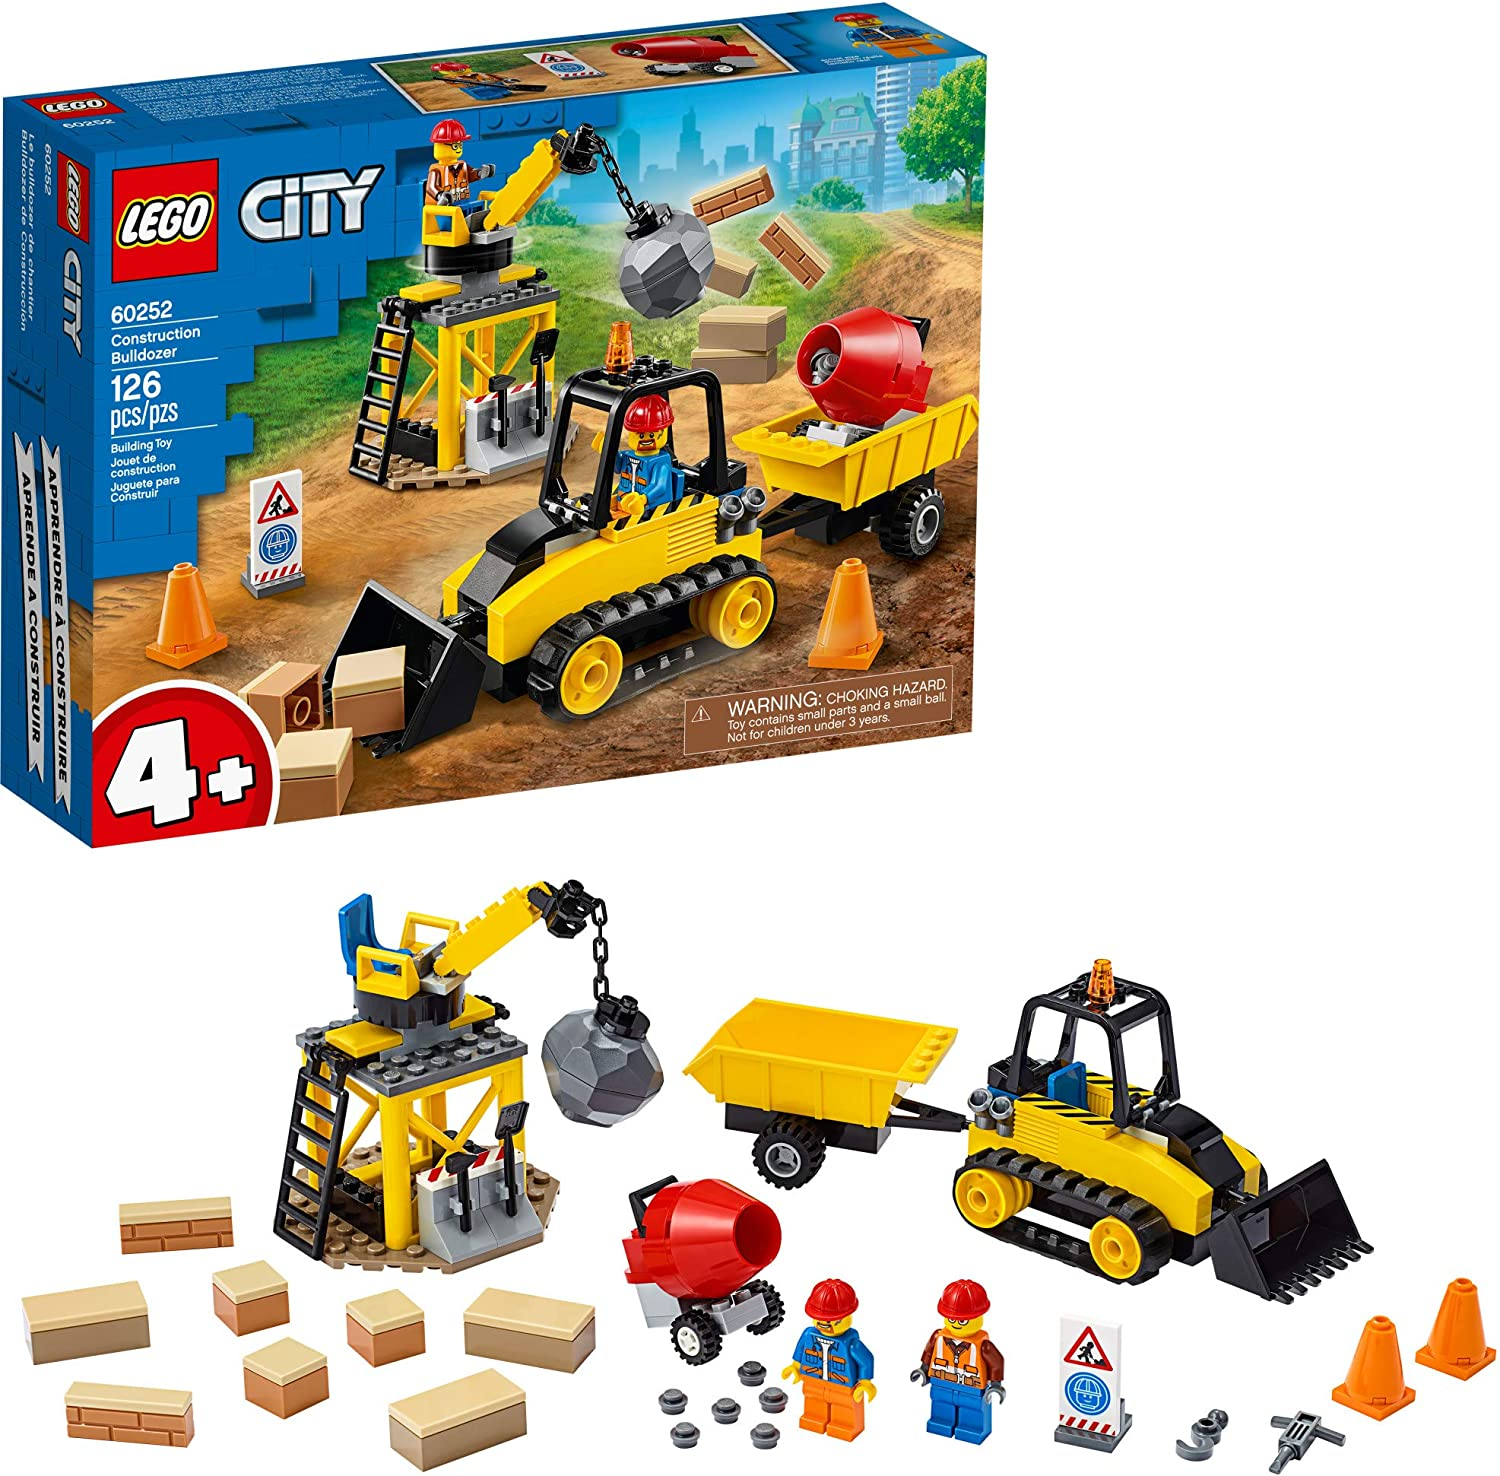 LEGO City Construction Playset